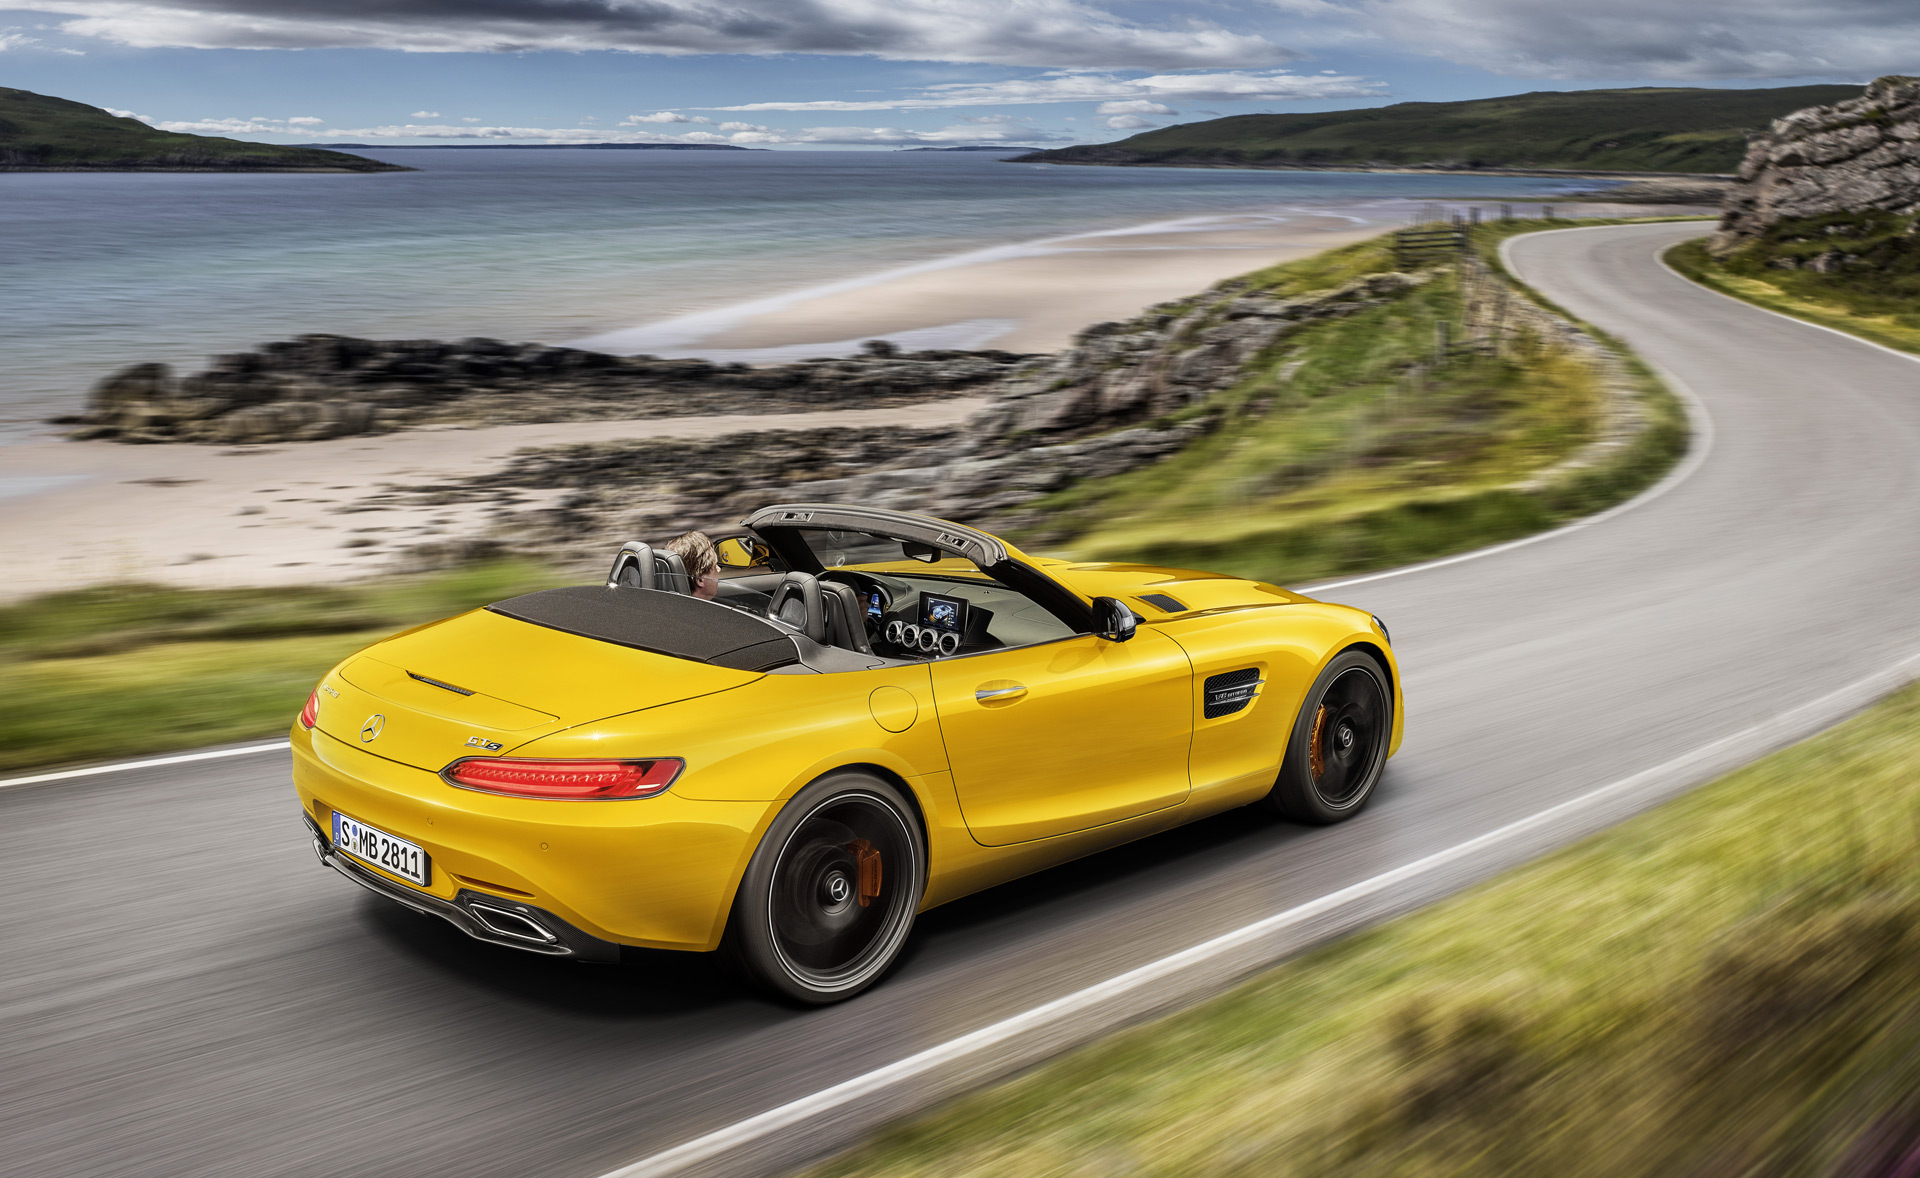 Mercedes Amg Gt S Roadster Devel Sixty 6x6 Bmw 8 Series Reveal Today Car News